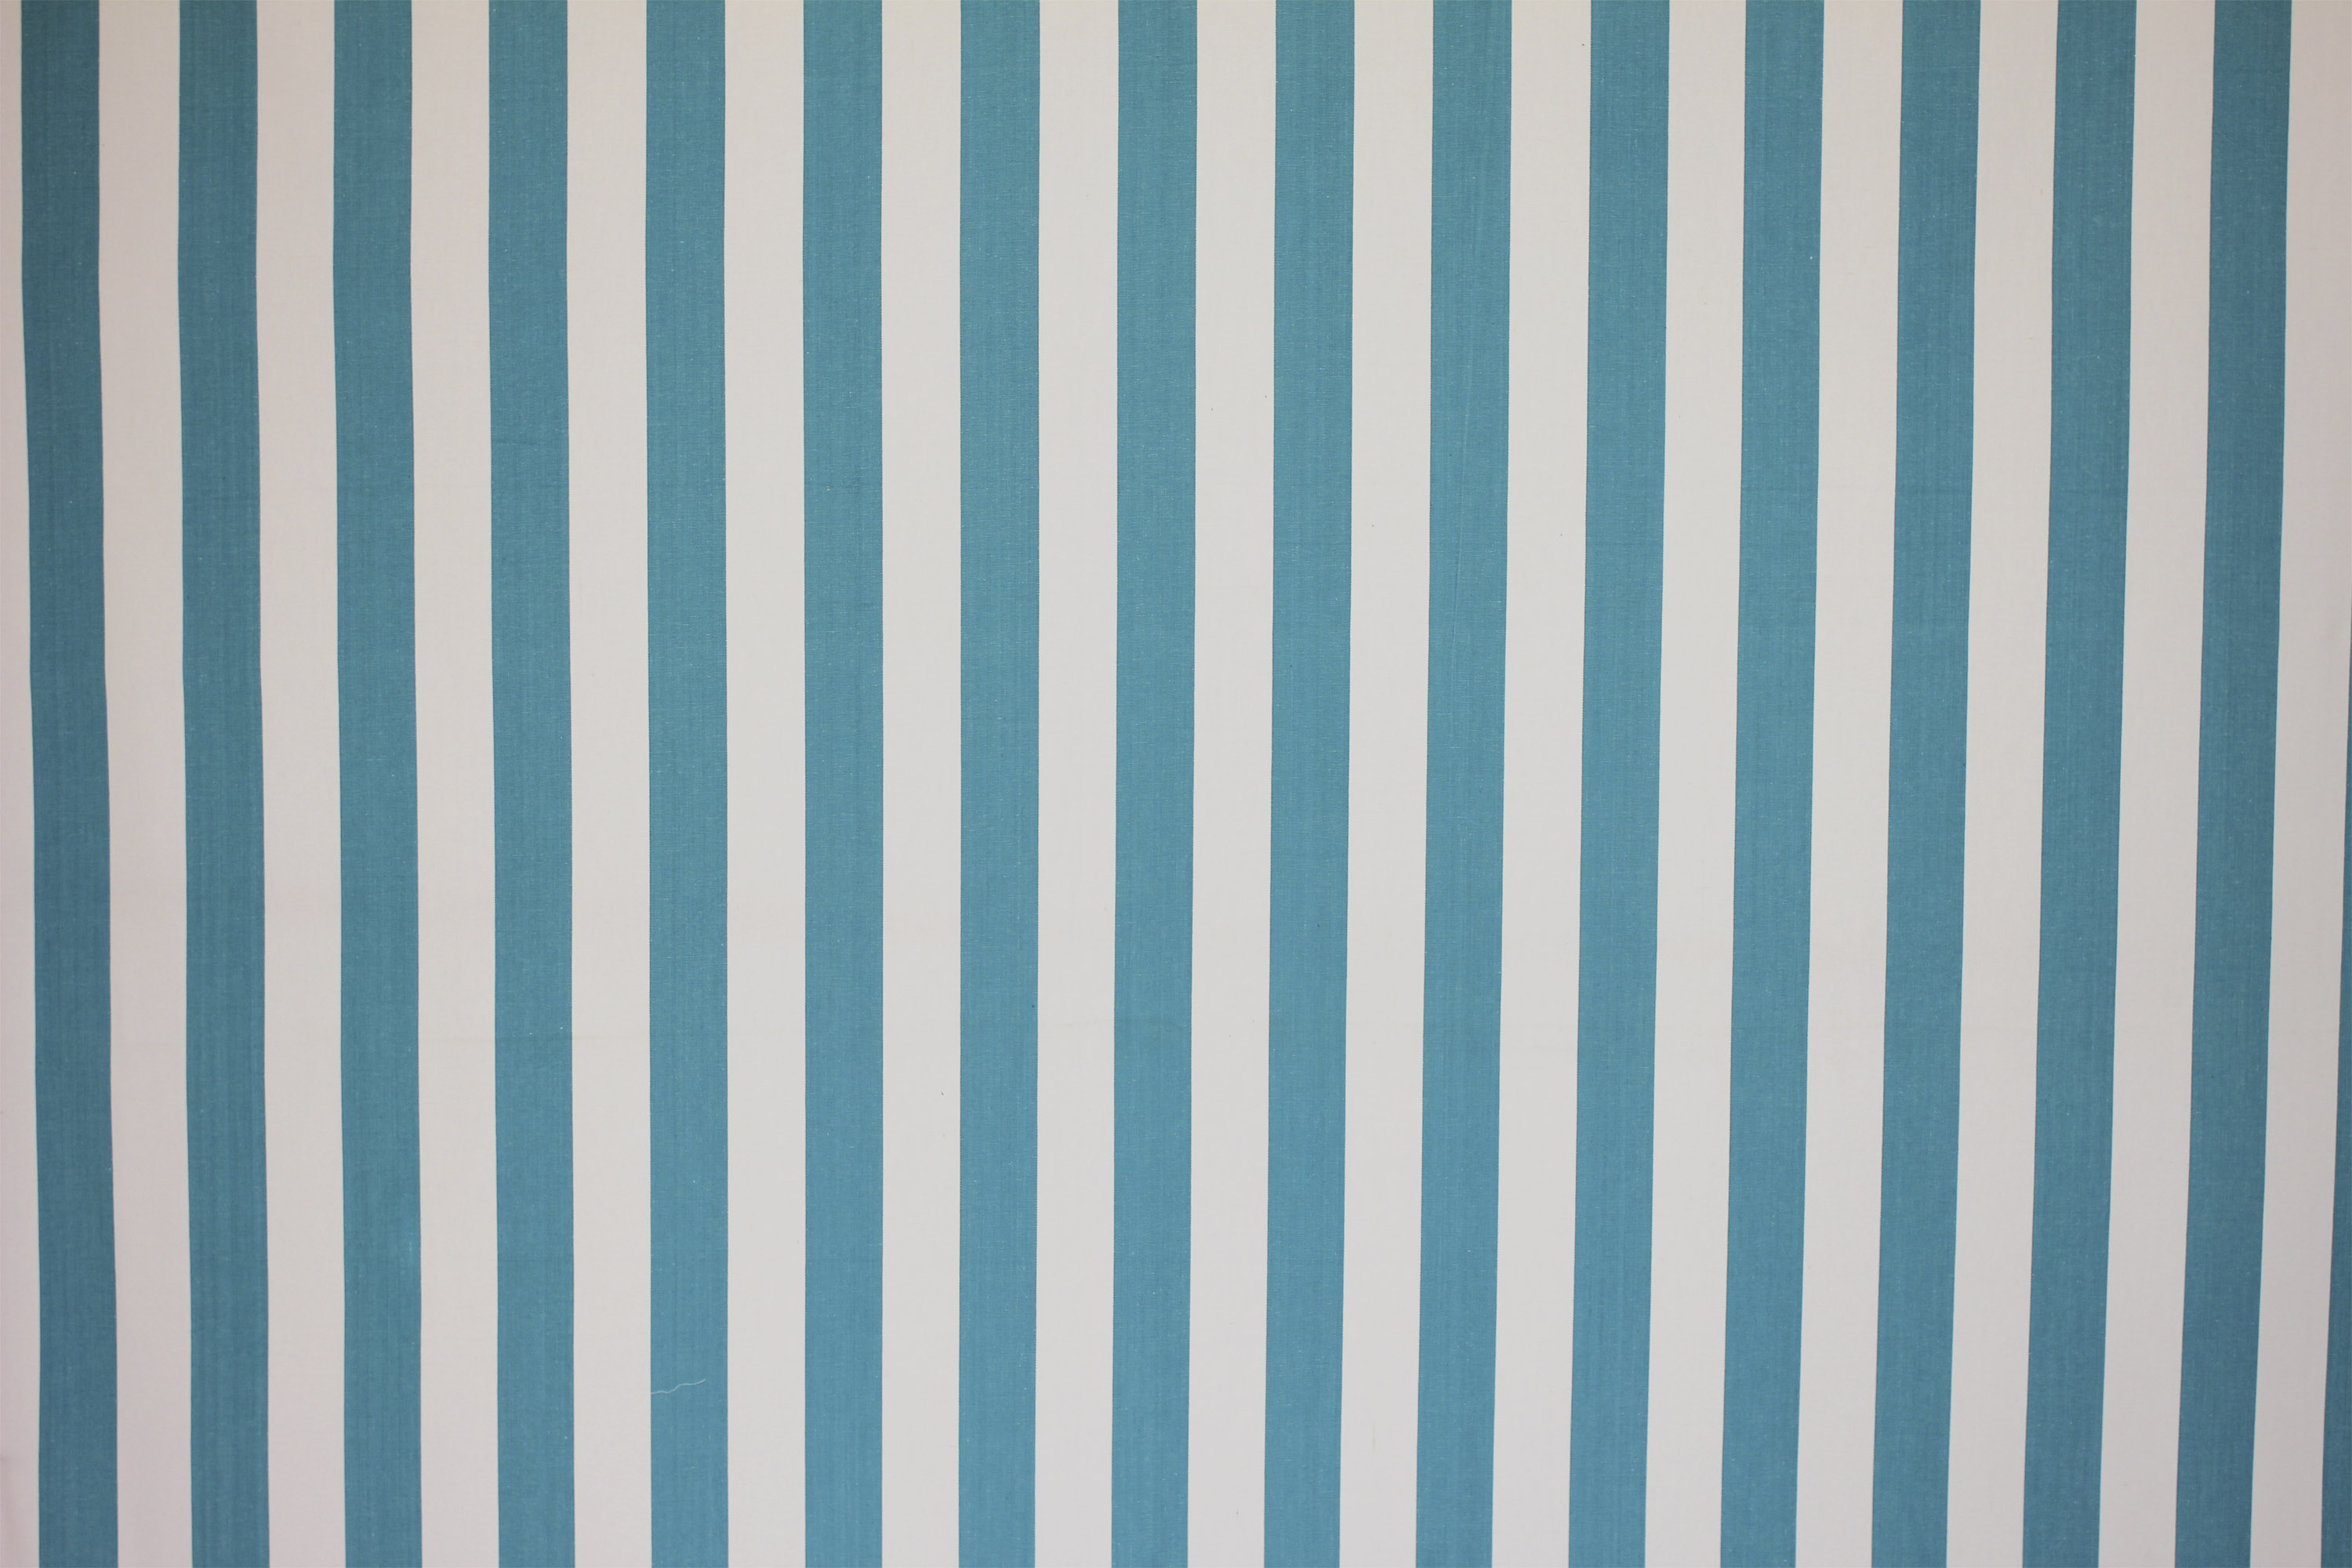 Surfing Turquoise and White Striped Fabric